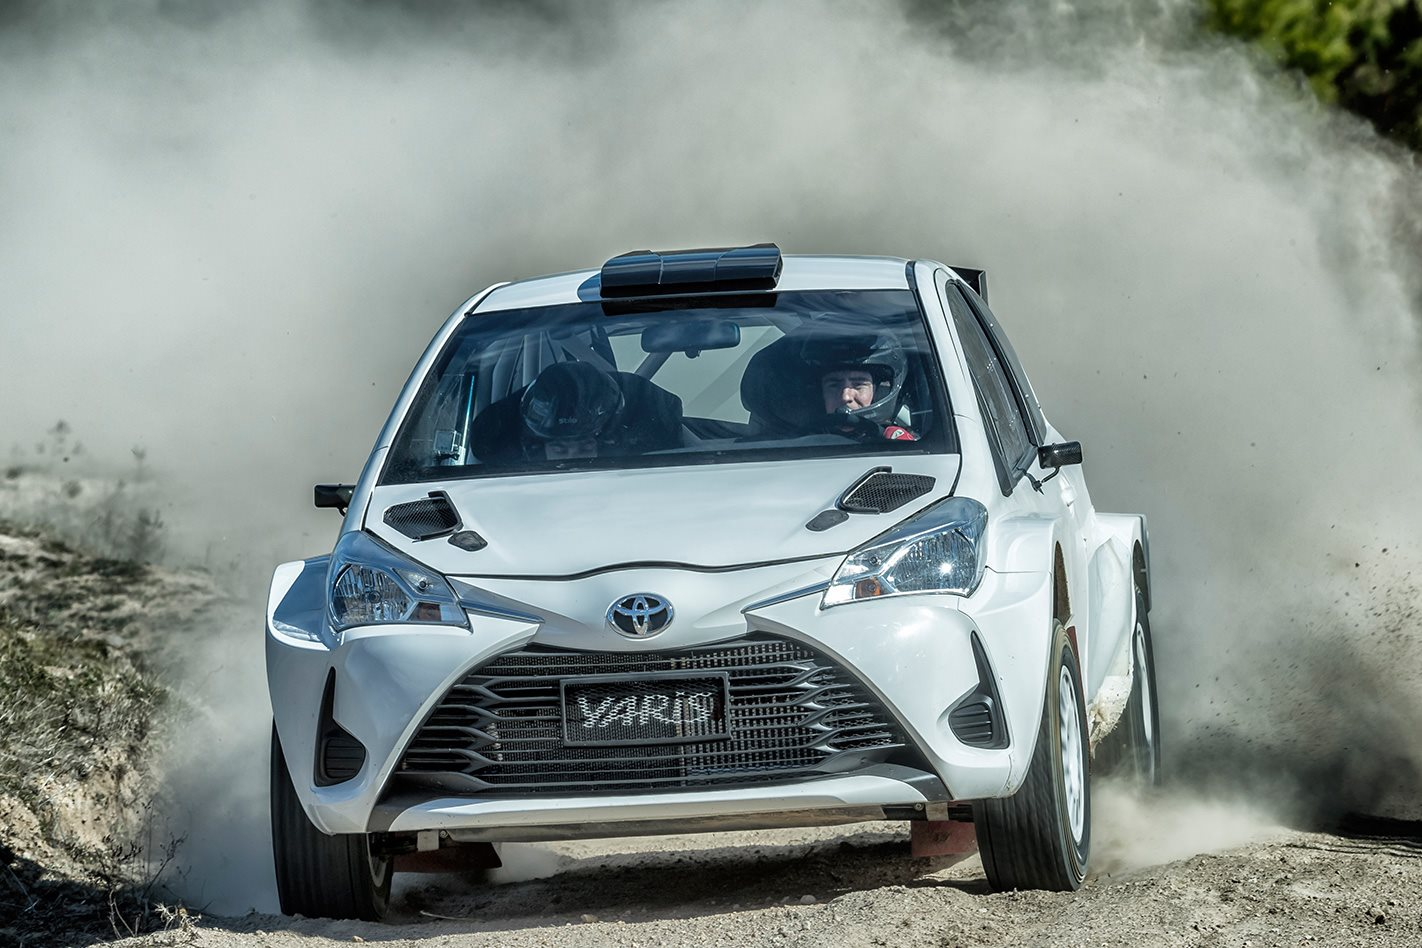 Toyota-Yaris-AP4-rally-car.jpg